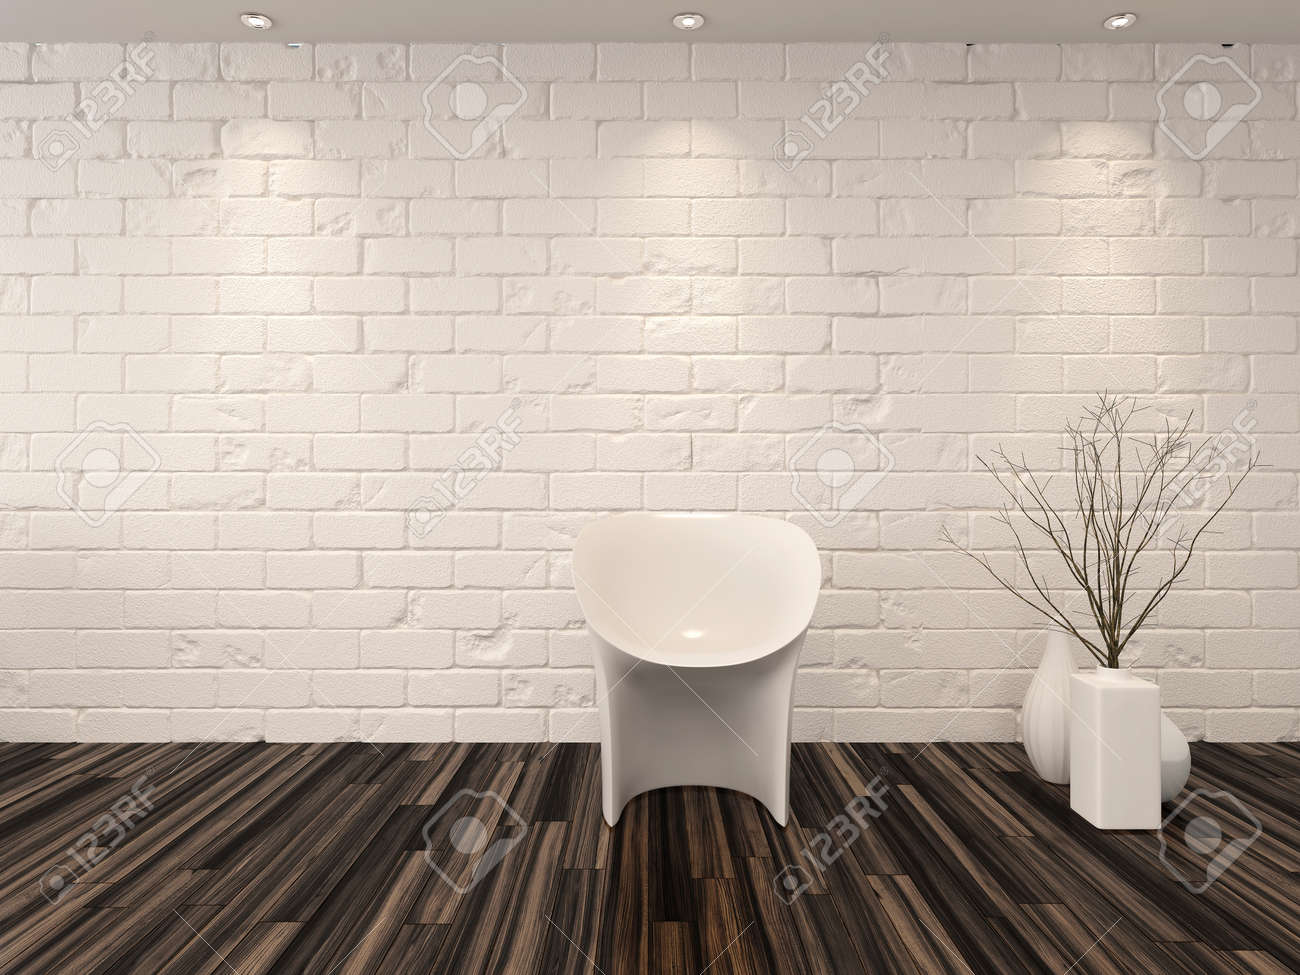 Single Modern White Chair Against A Whitewashed Brick Wall With Vase Ornaments And Recessed Overhead Down